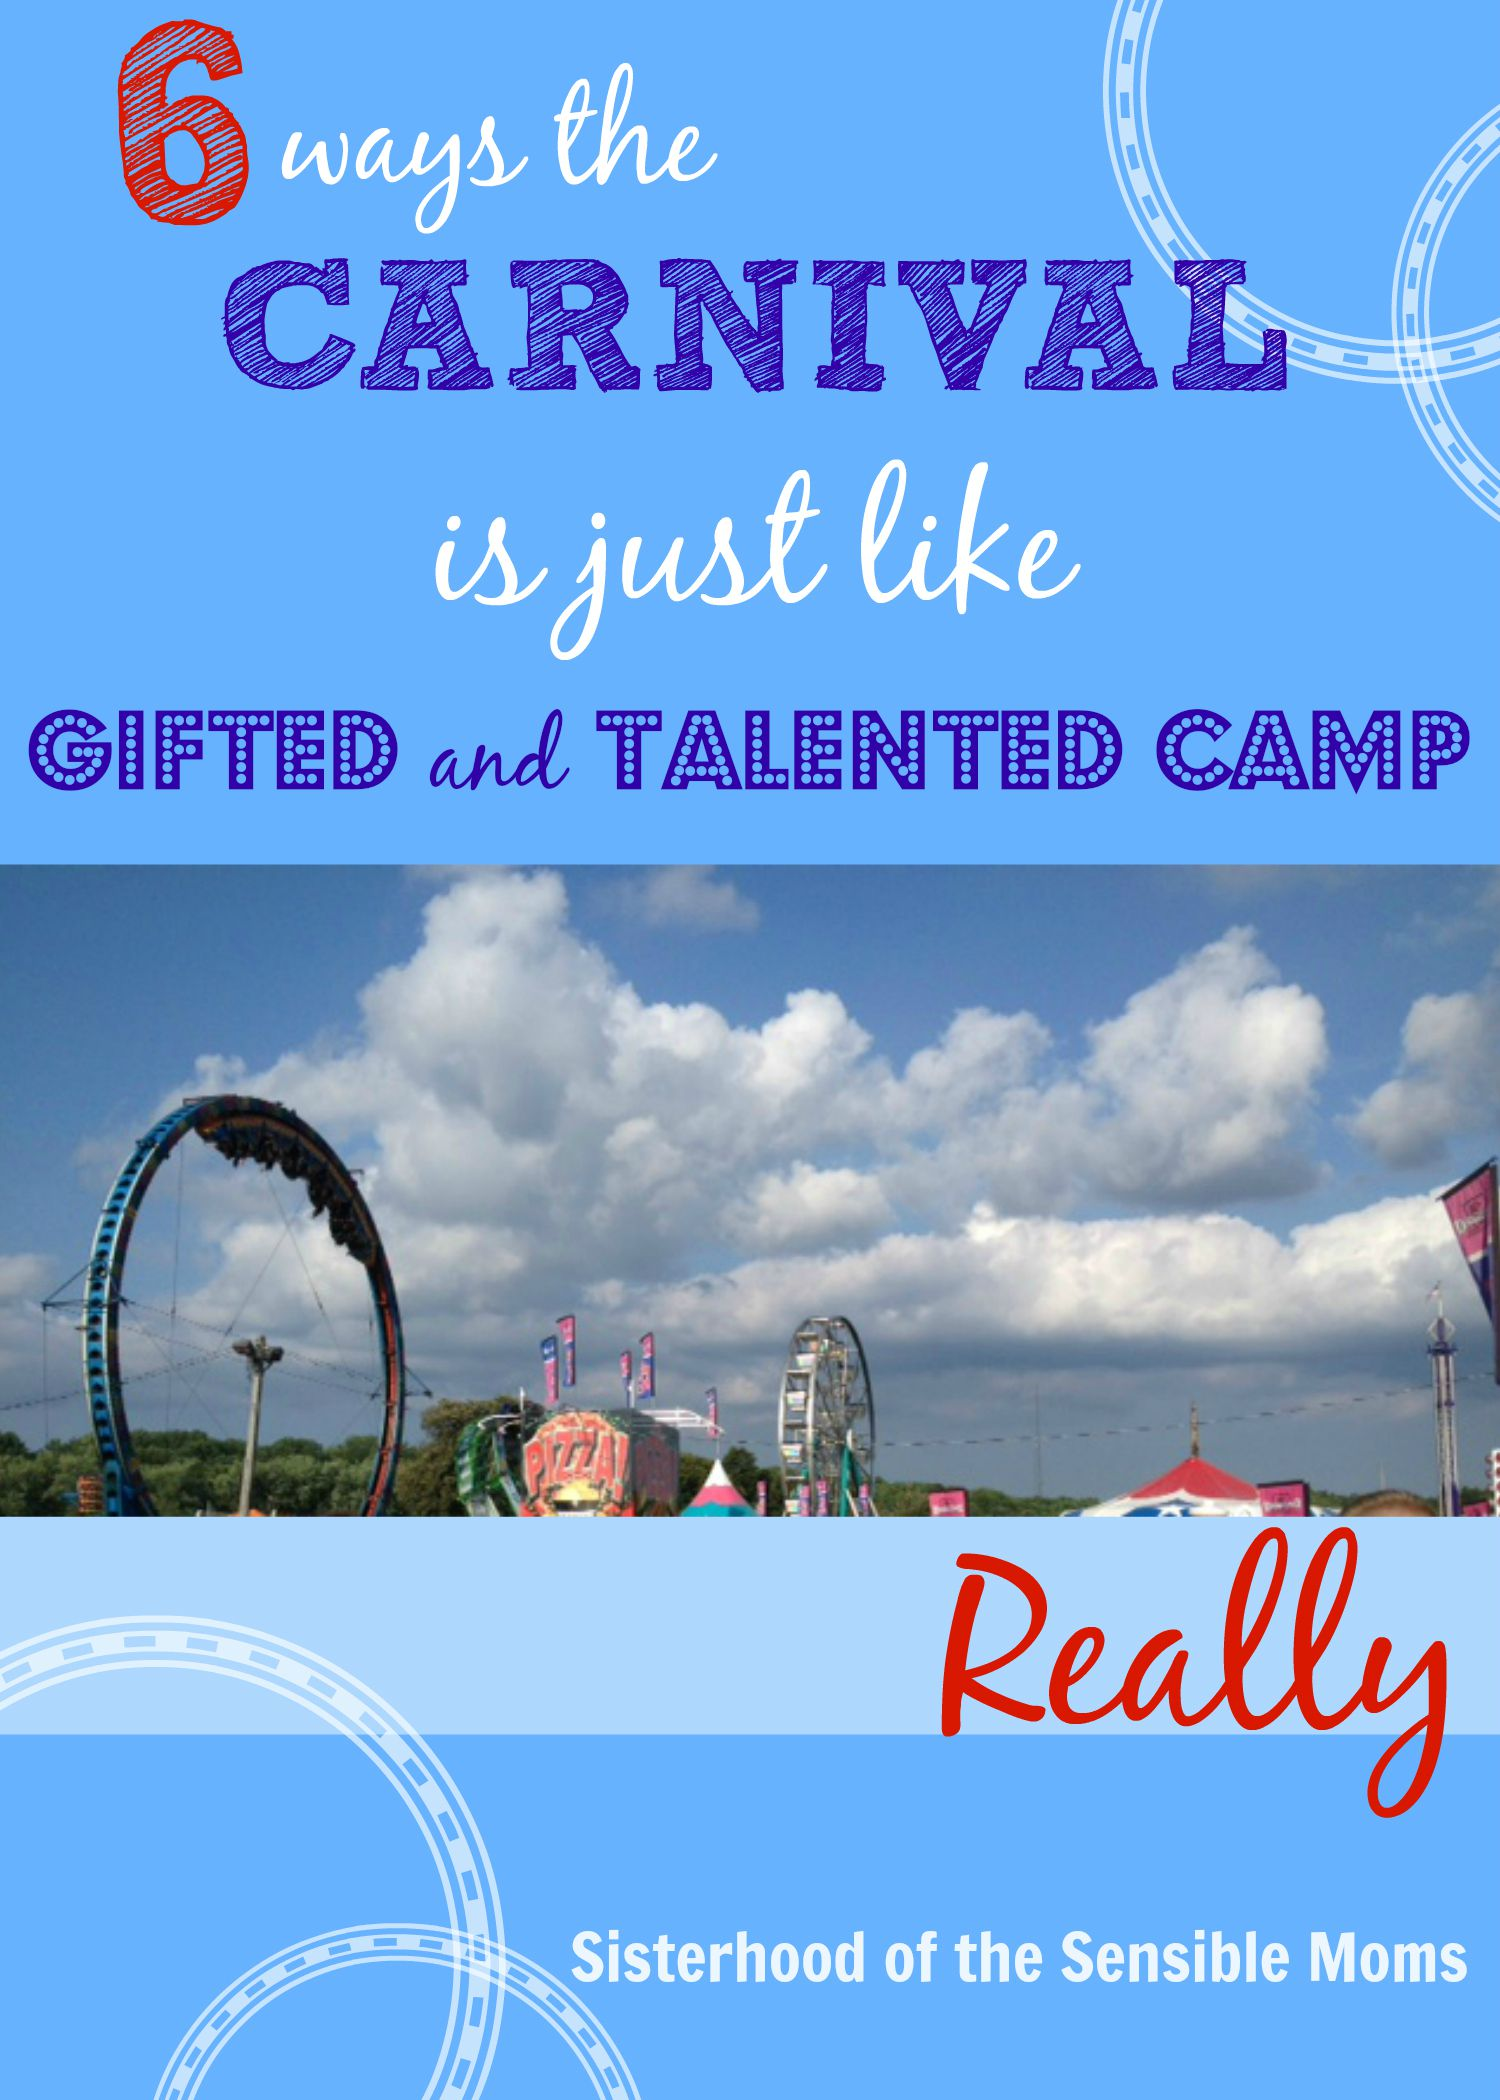 This summer, can you actually see the knowledge oozing out of your kids' ears like a Popsicle melting on a parking lot? Our solution? The carnival is just like gifted and talented camp. Really. From Sisterhood of the Sensible Moms.